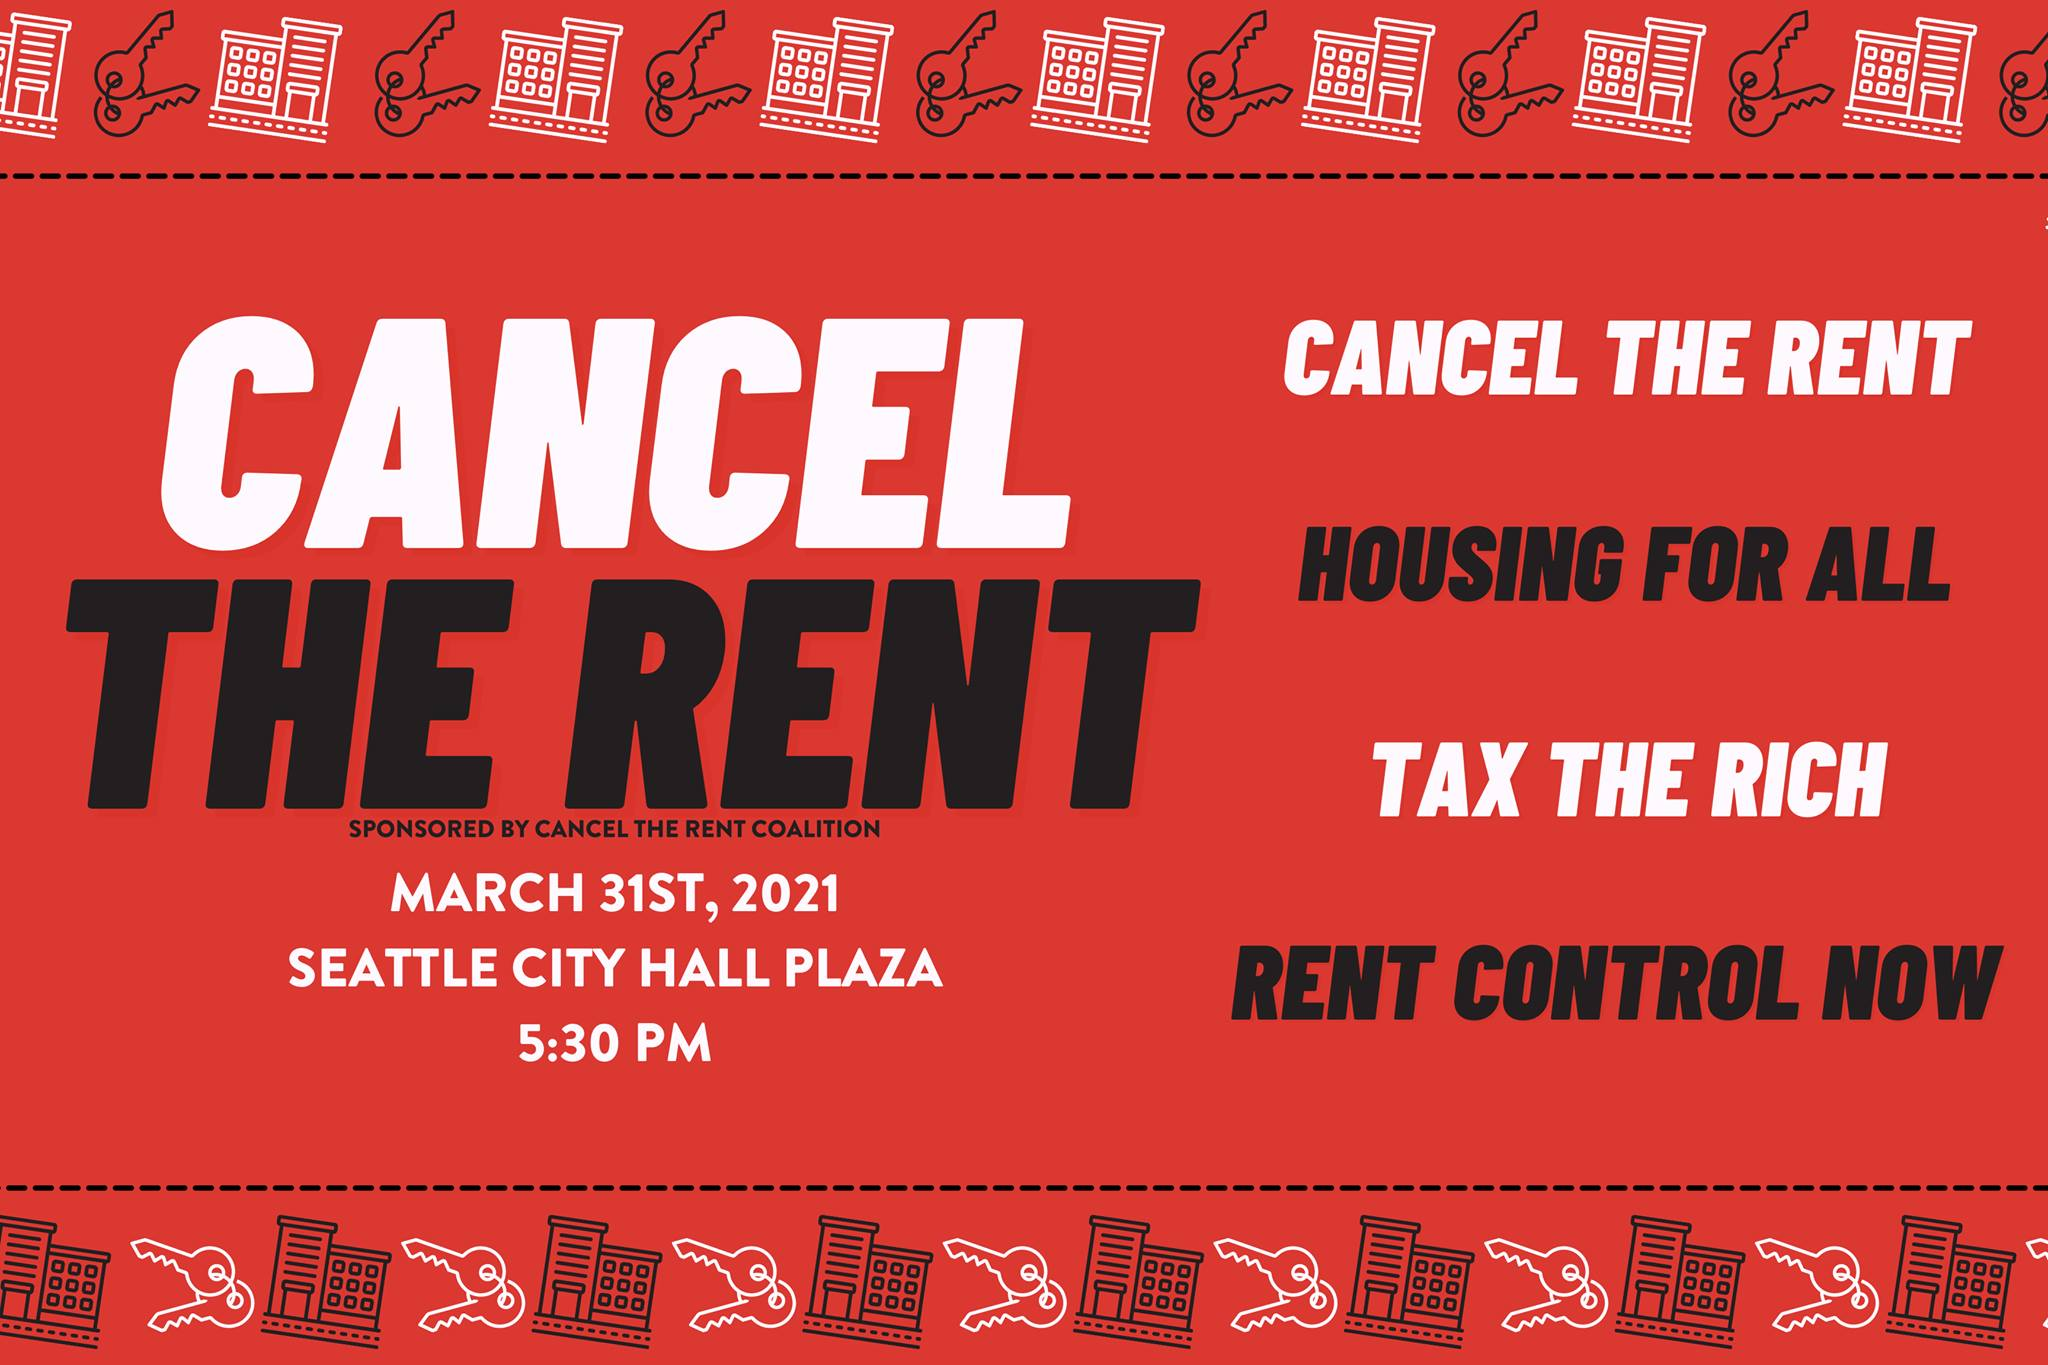 Red banner with white and black lettering - Cancel the Rent, Housing for All, Tax the Rich, Rent Control Now